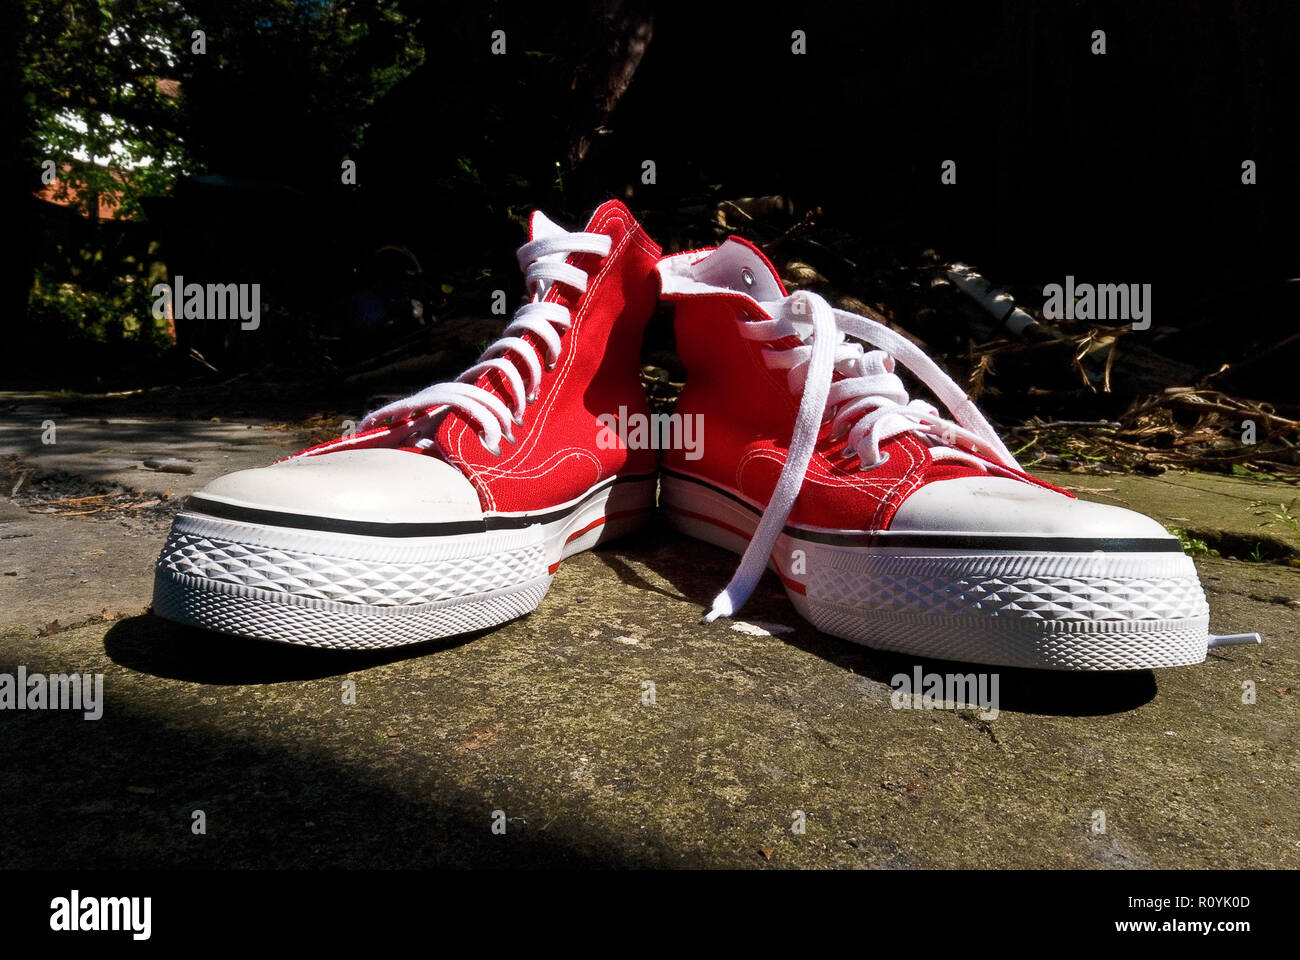 Red Pumps - Basket Ball Boots - Stock Image